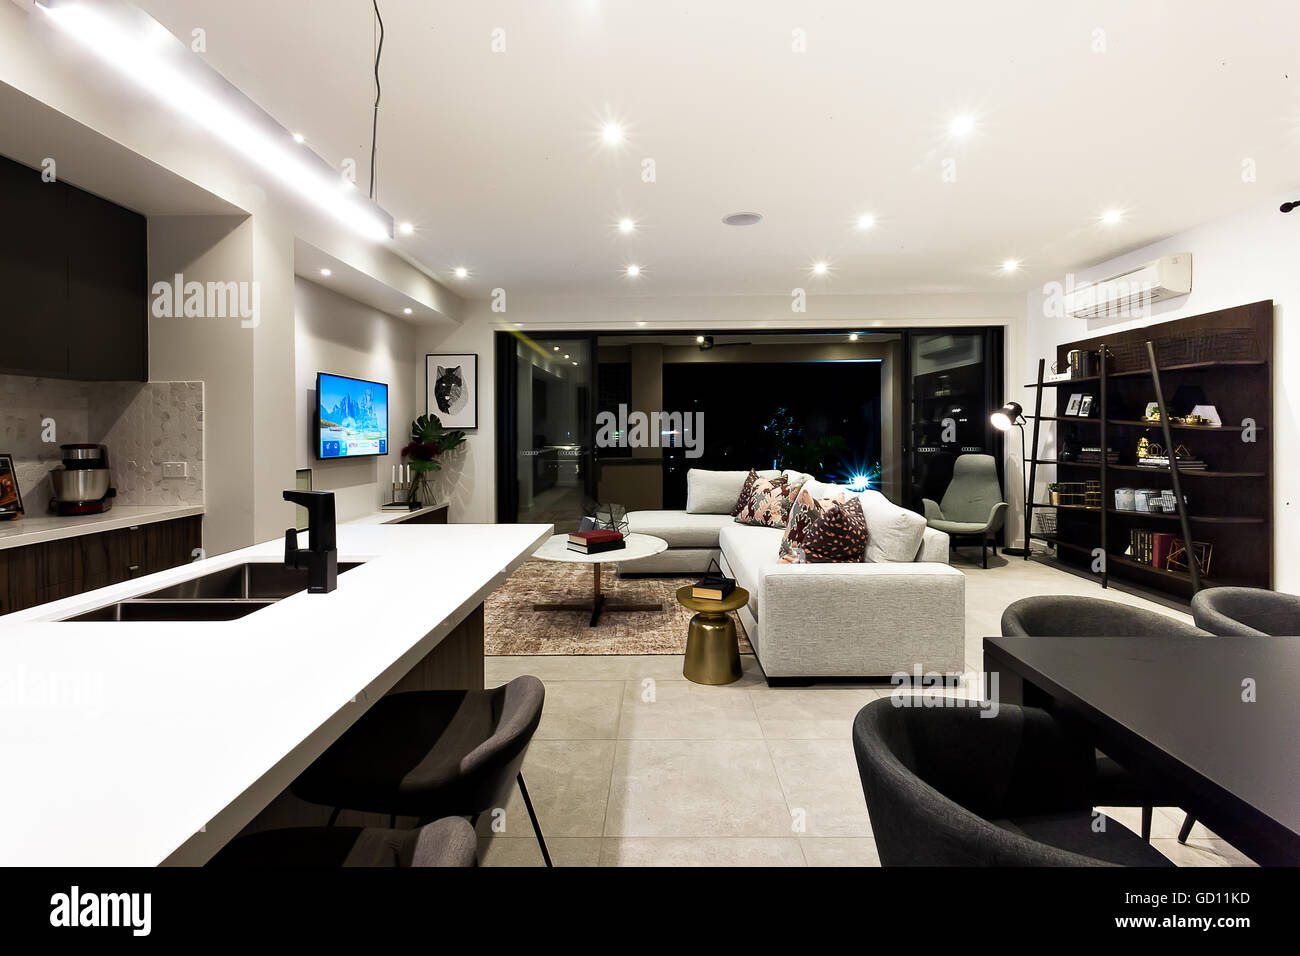 Creative living room including kitchen, dinner, shelf and living room next to outside patio area at night - Stock Image